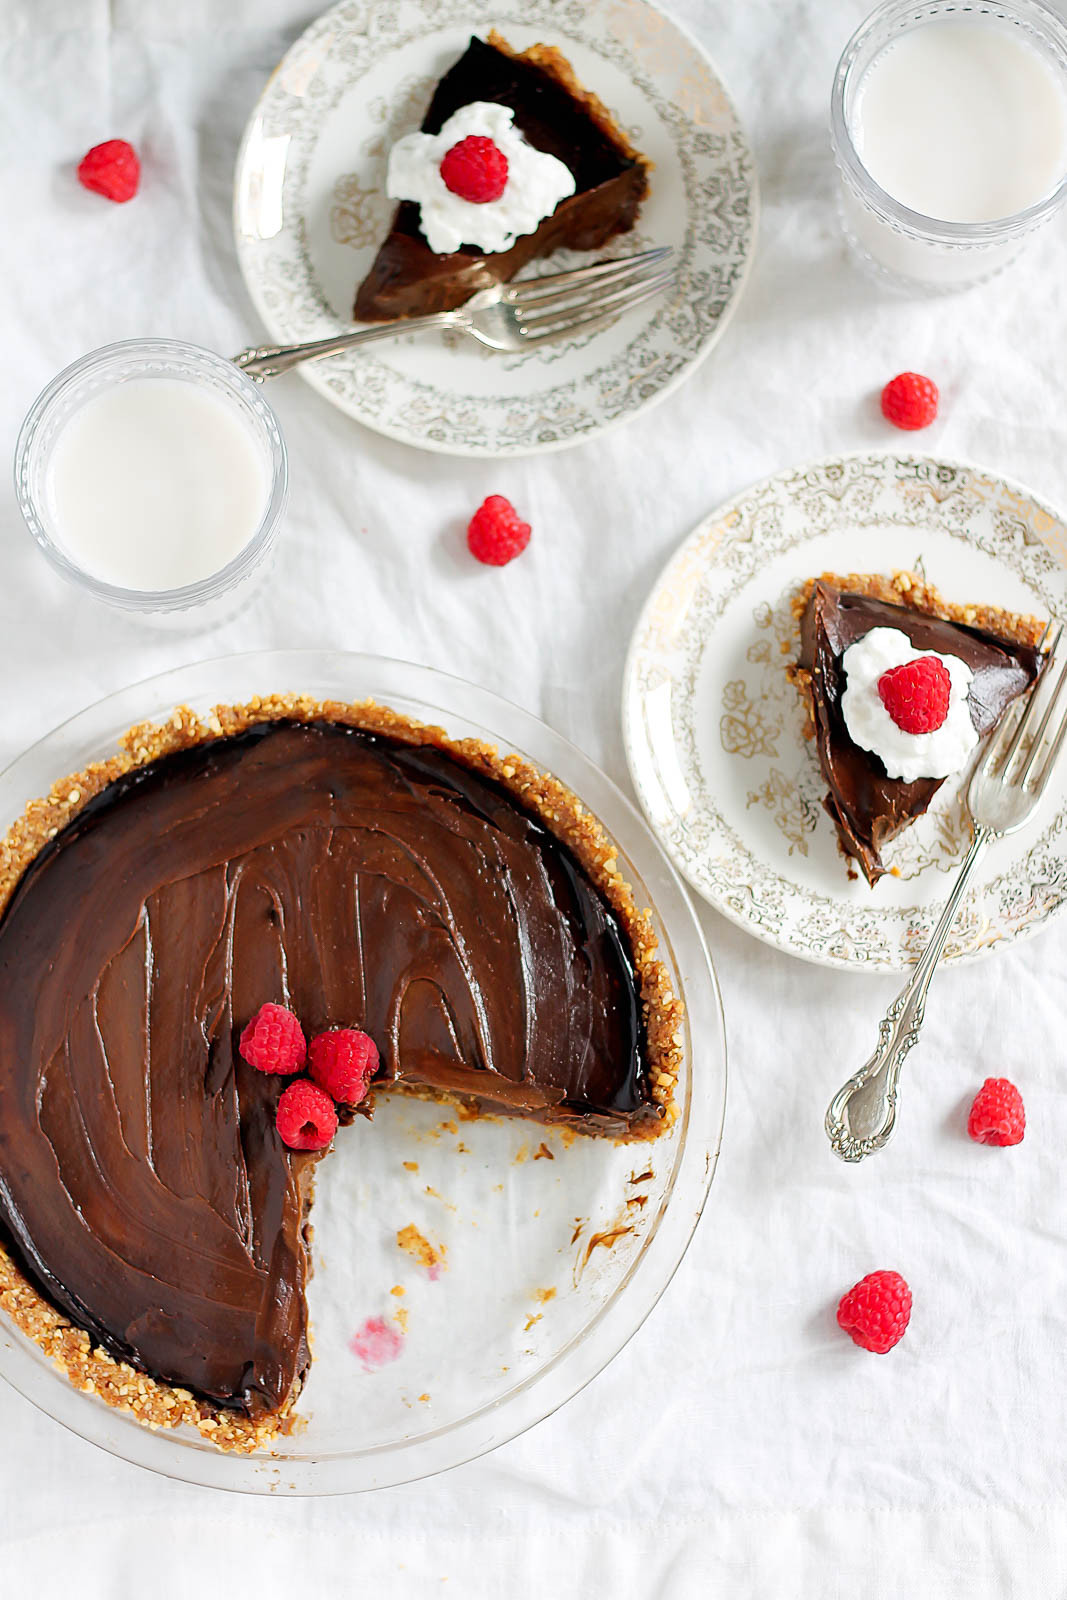 Easy Healthy Desserts No Bake  Vegan Chocolate Avocado Pudding Pie with Salted Almond